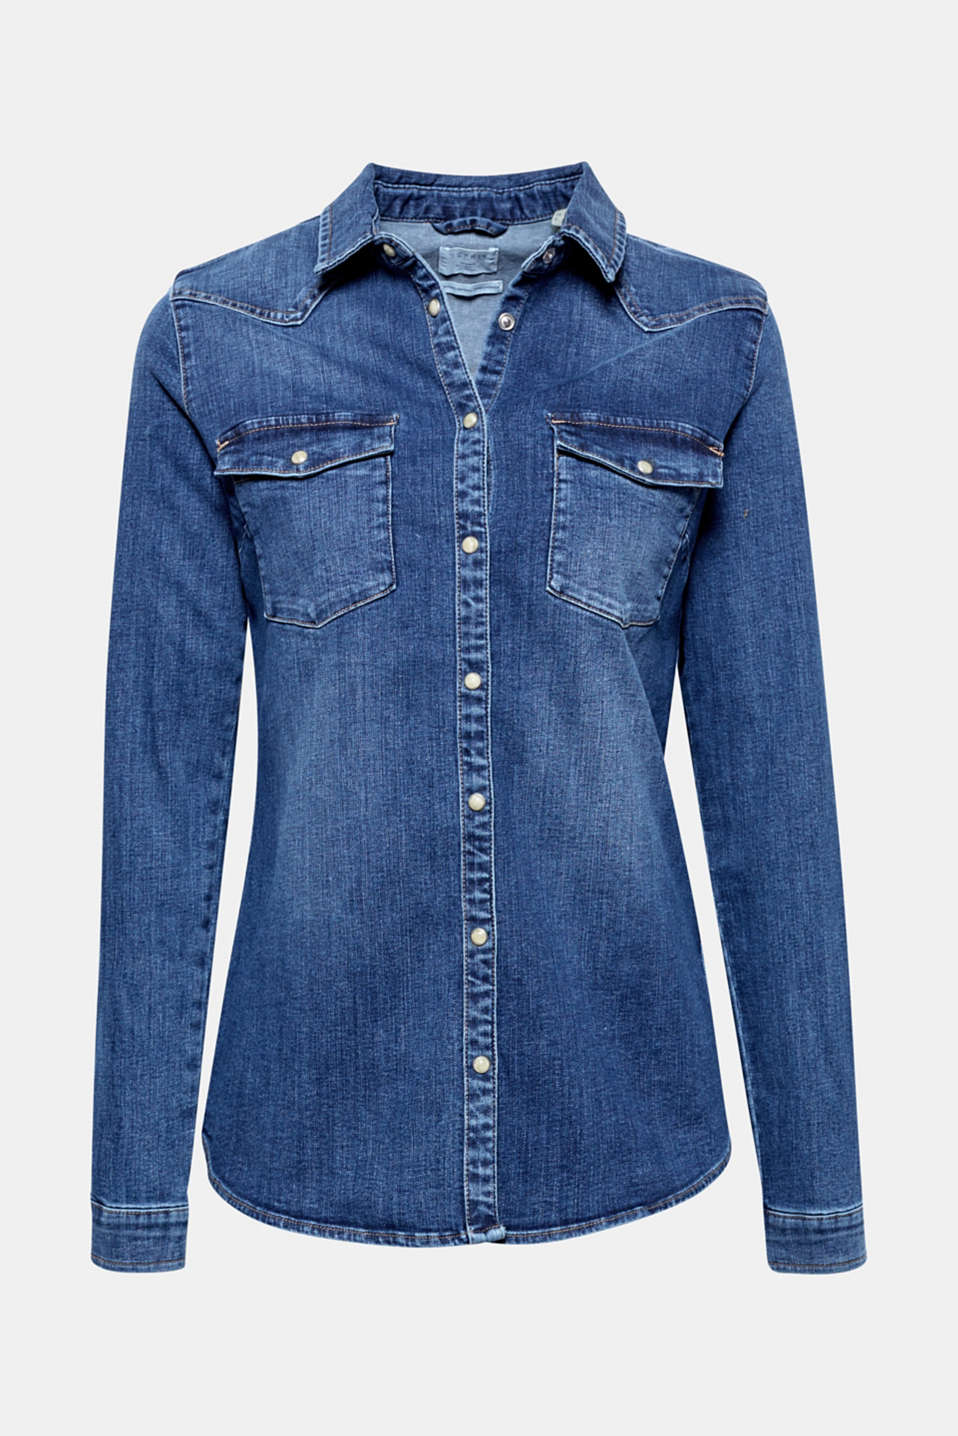 This fitted denim shirt composed of stretch cotton with mother-of-pearl press studs is a timeless classic!